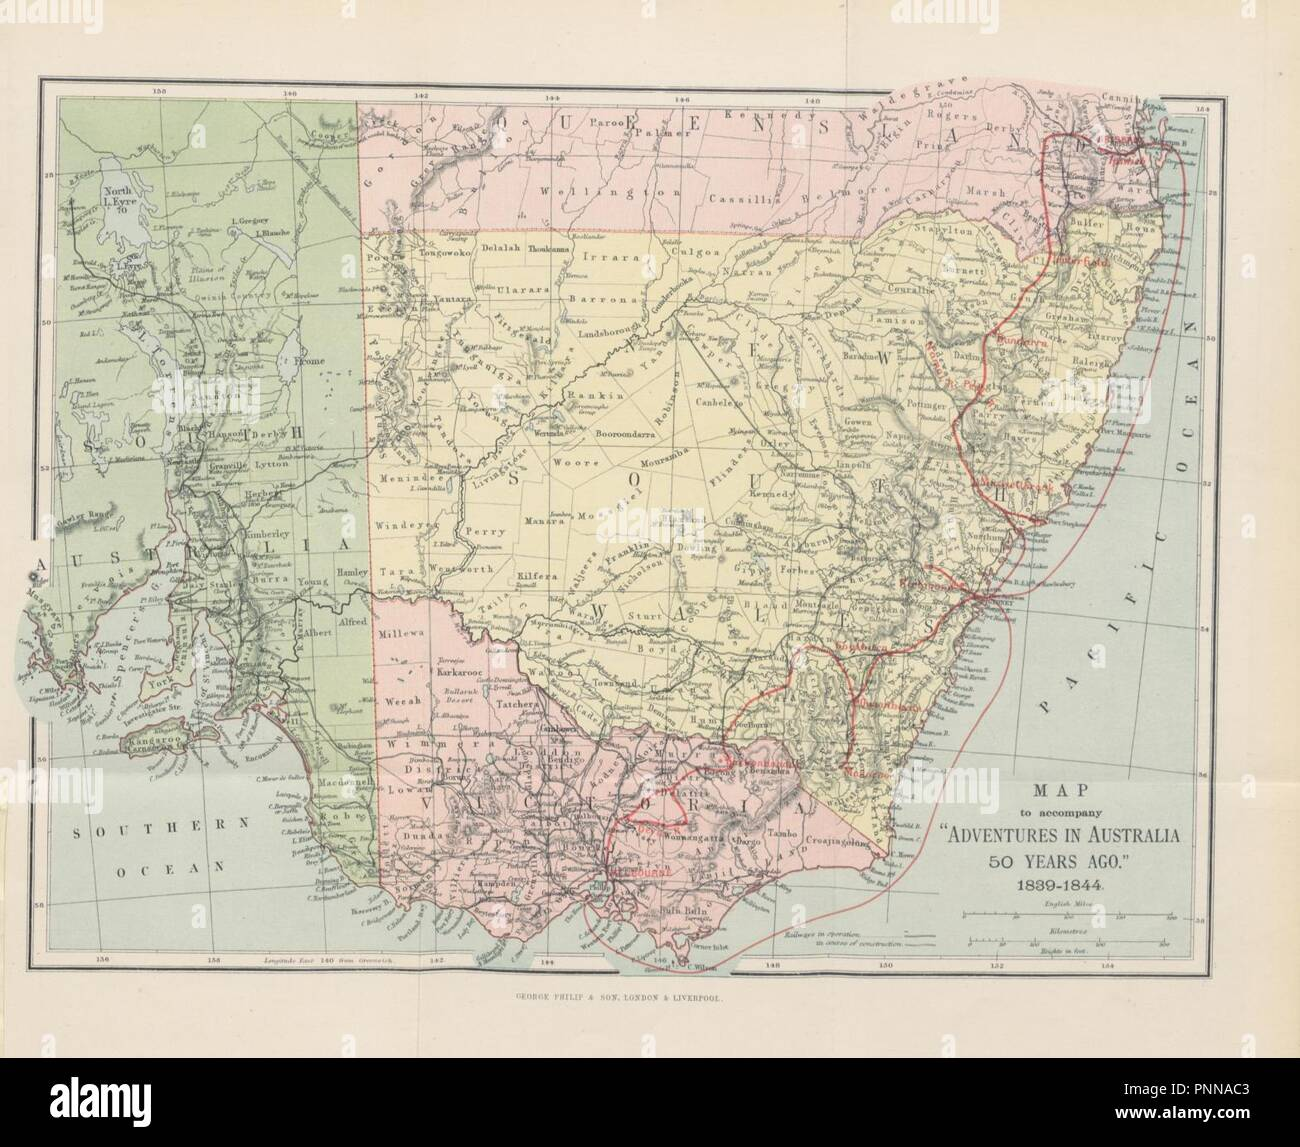 5762c8300b1 Being a record of an emigrant's wanderings through the colonies of New  South Wales, Victoria and Queensland during the years 1839-1844.